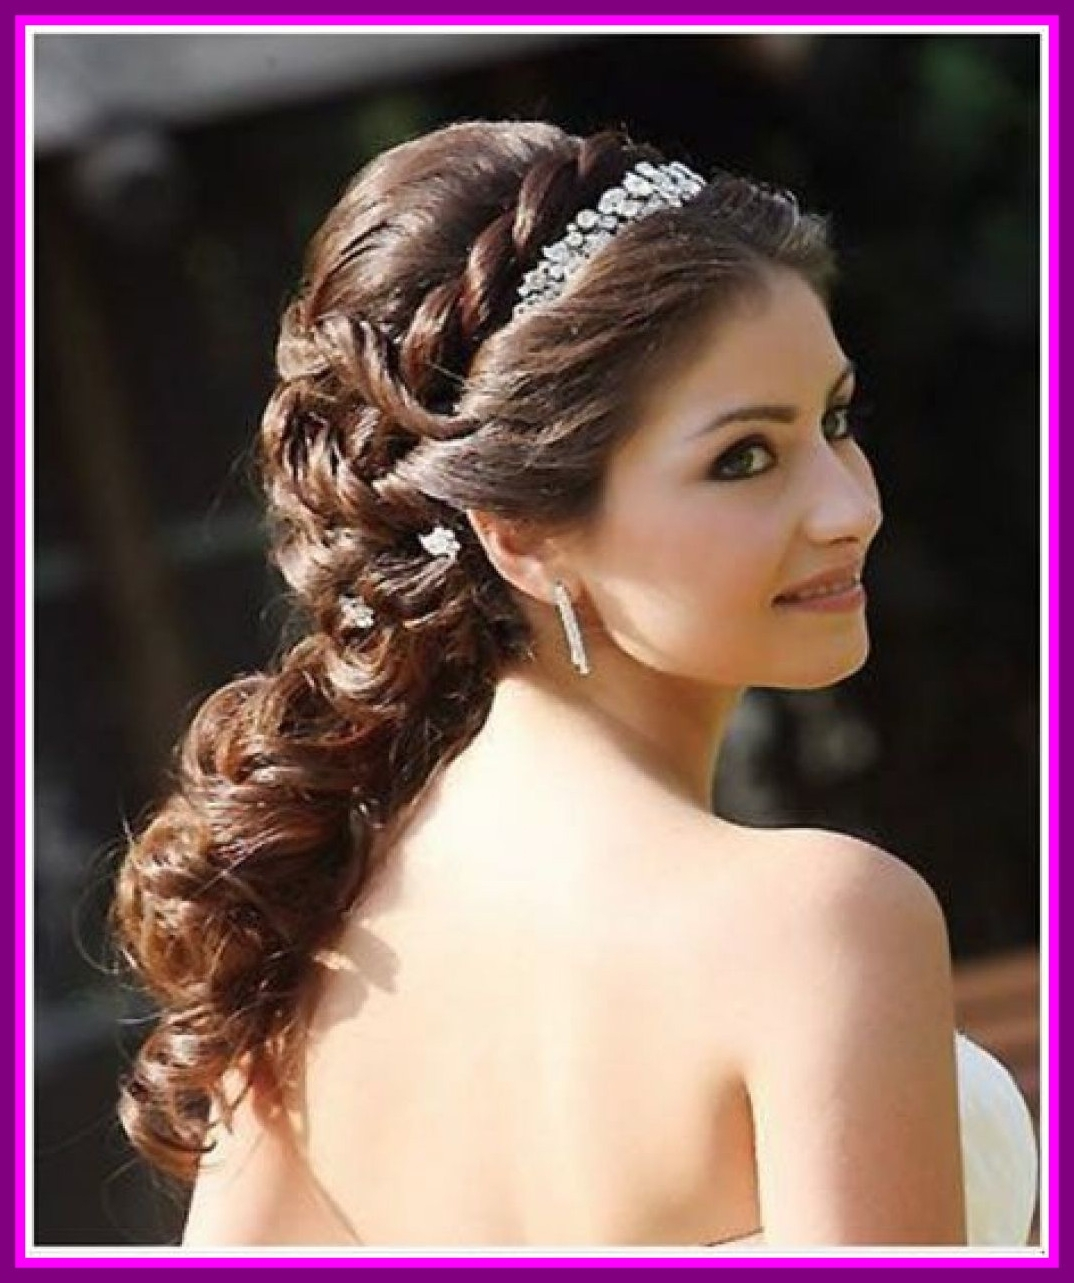 Popular Christian Bride Wedding Hairstyles Throughout Appealing Best Wedding Hairstyles For Christian Brides Our Top Image (View 7 of 15)